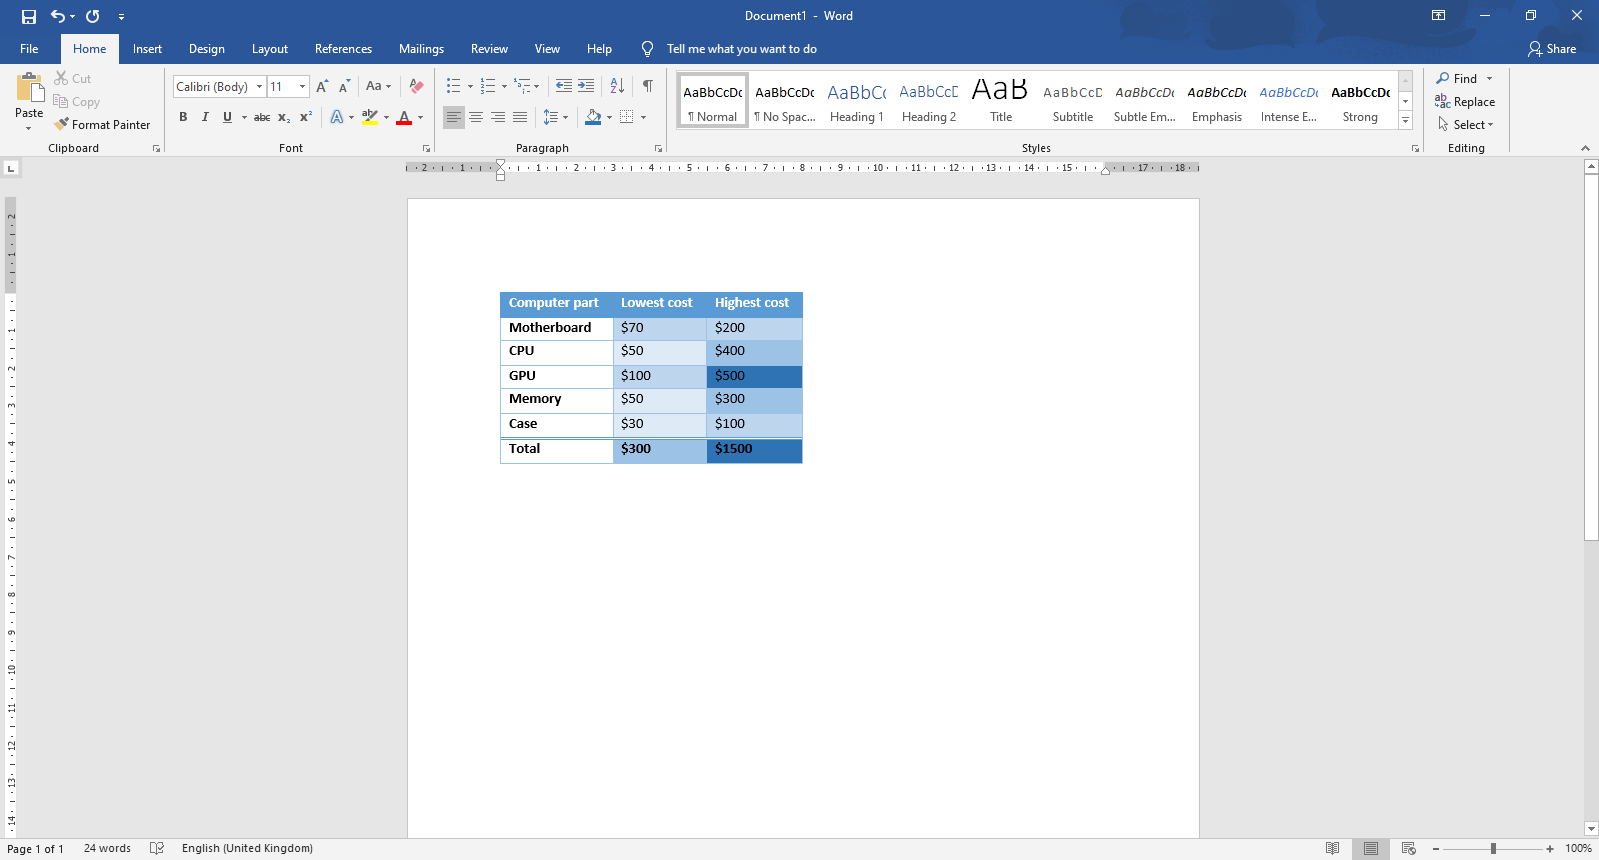 How to add and customize a table in word